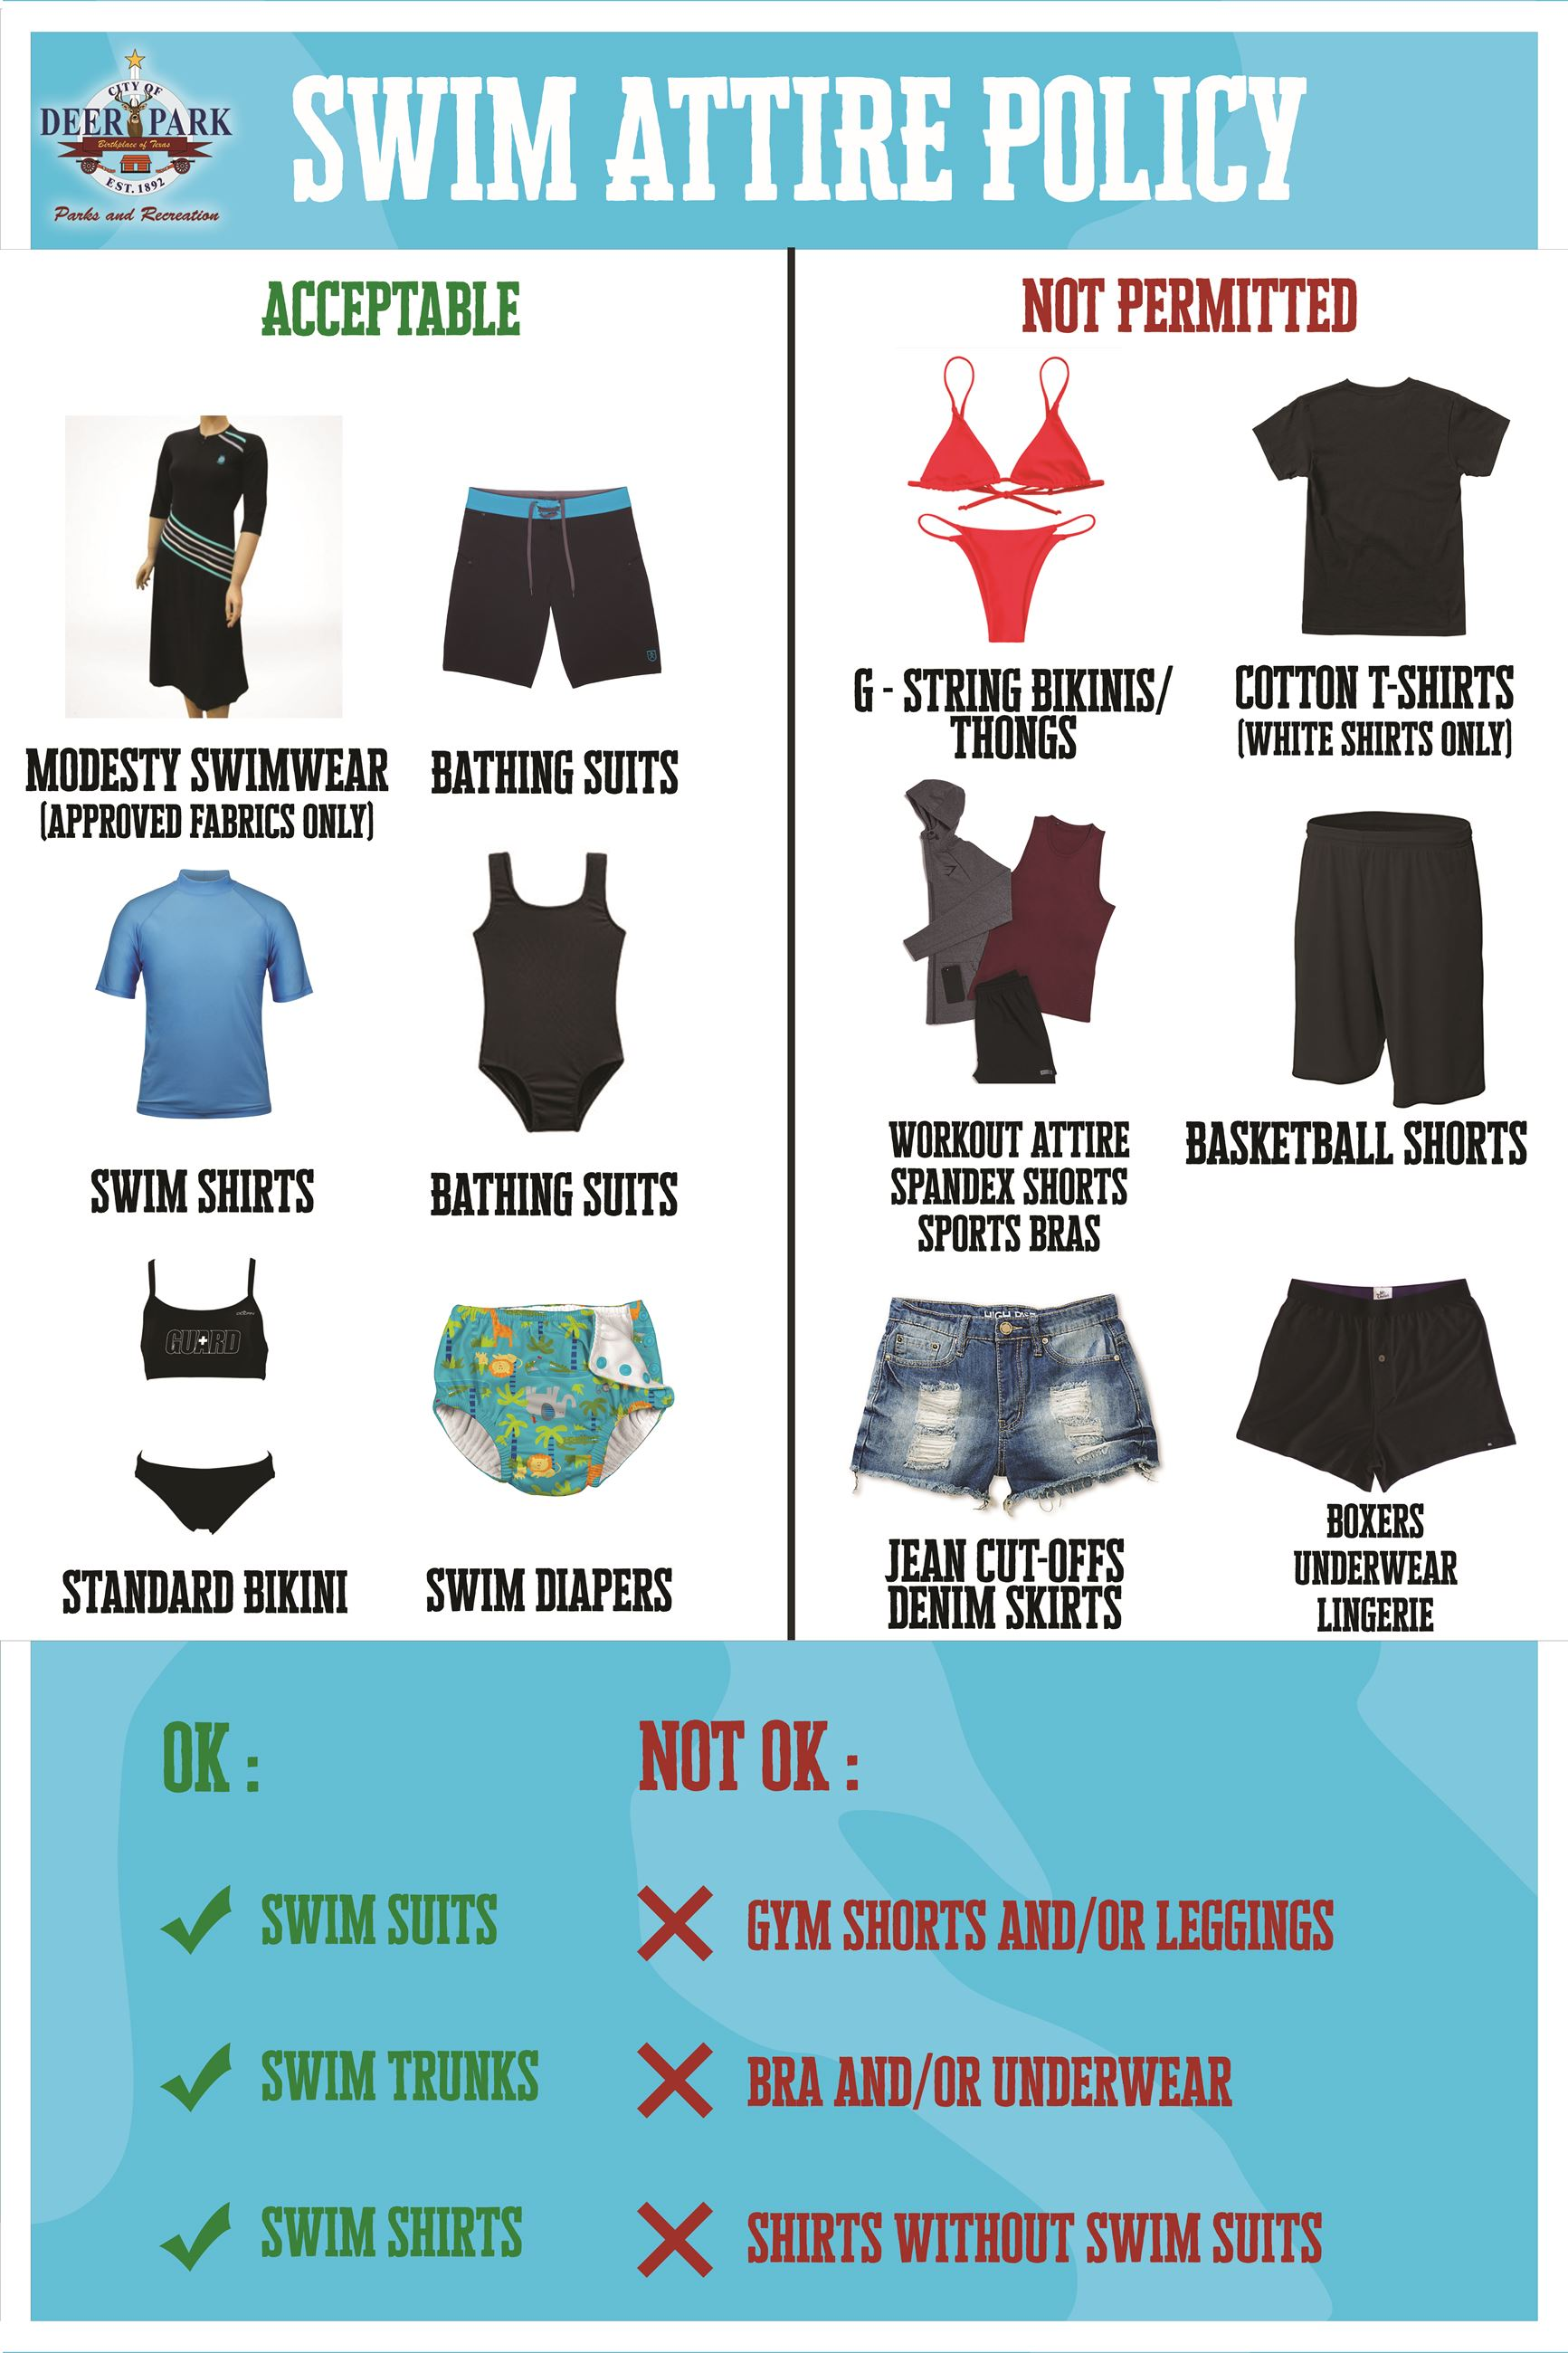 Swim Attire policy graphic with text saying swim suits, swim trunks, and swim shirts are approved pool attire.